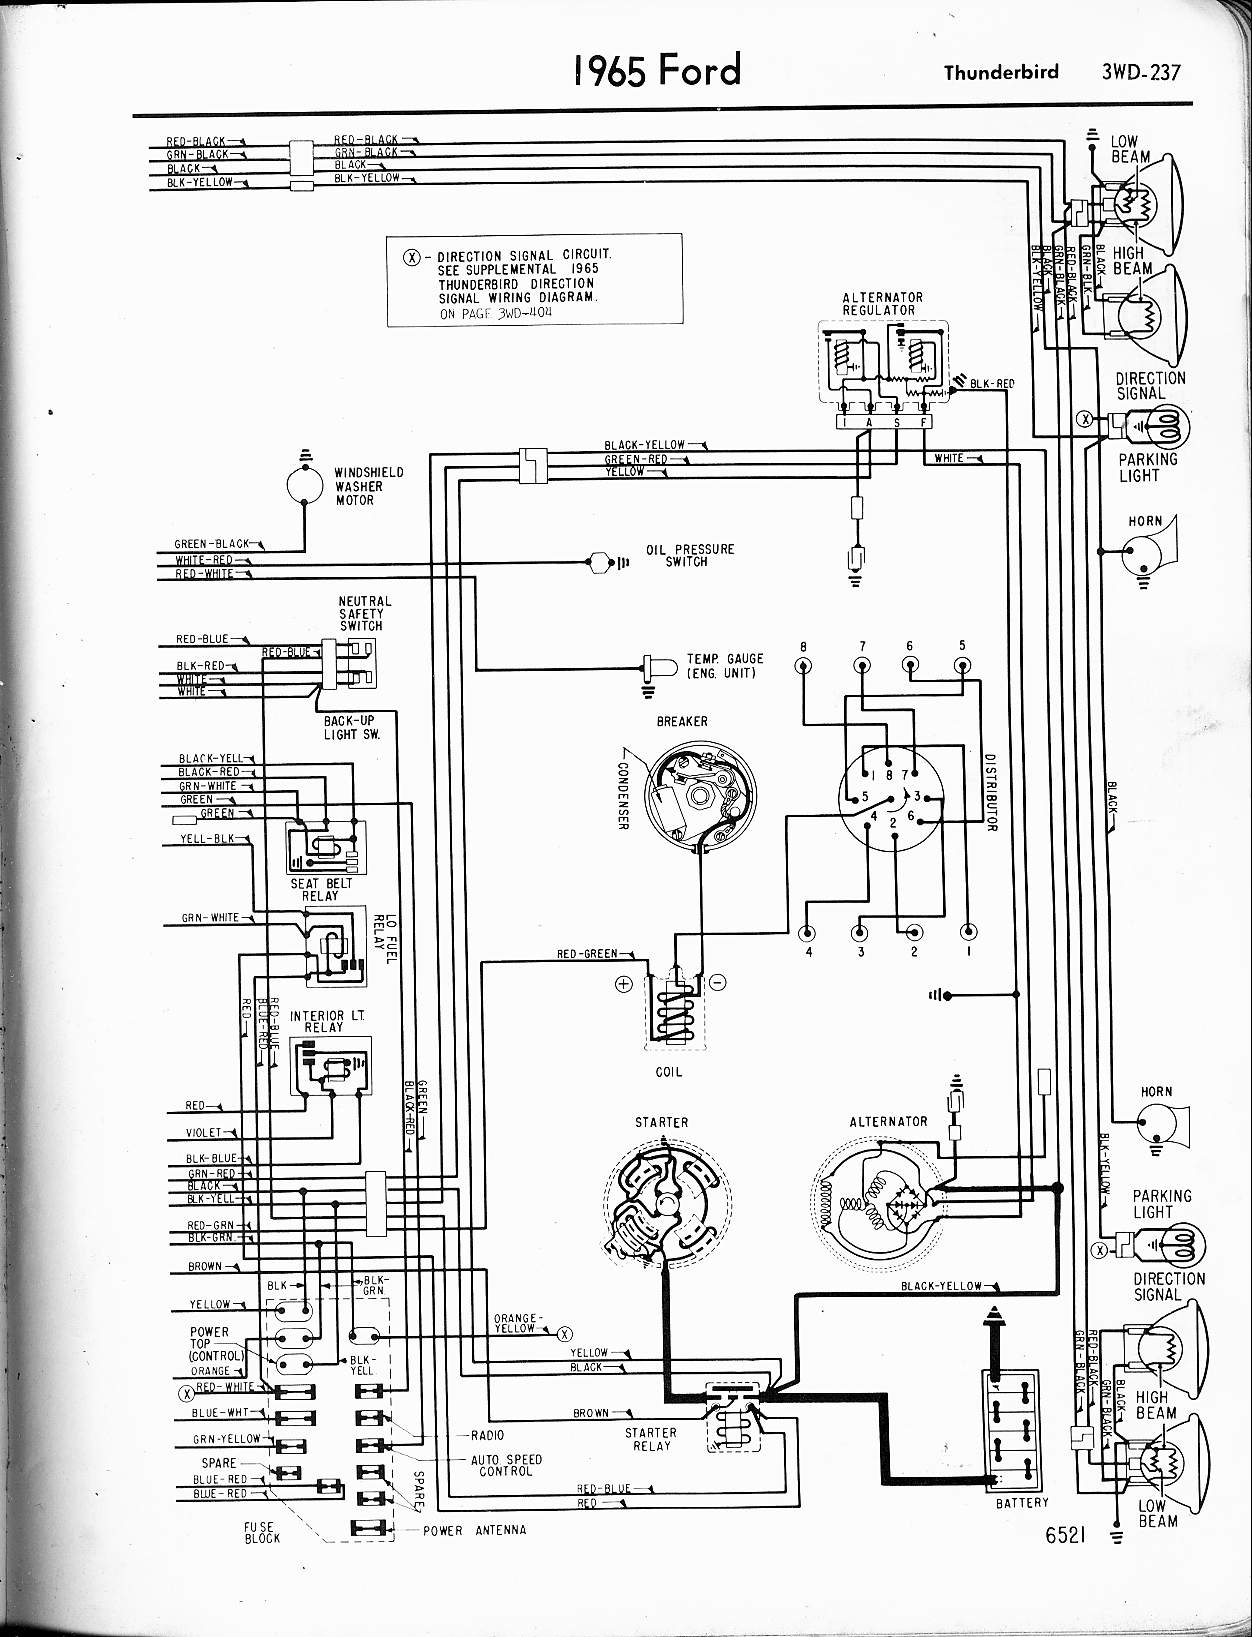 65 ford f100 wiring diagram free download wiring diagram schematic rh  skincareuse pw